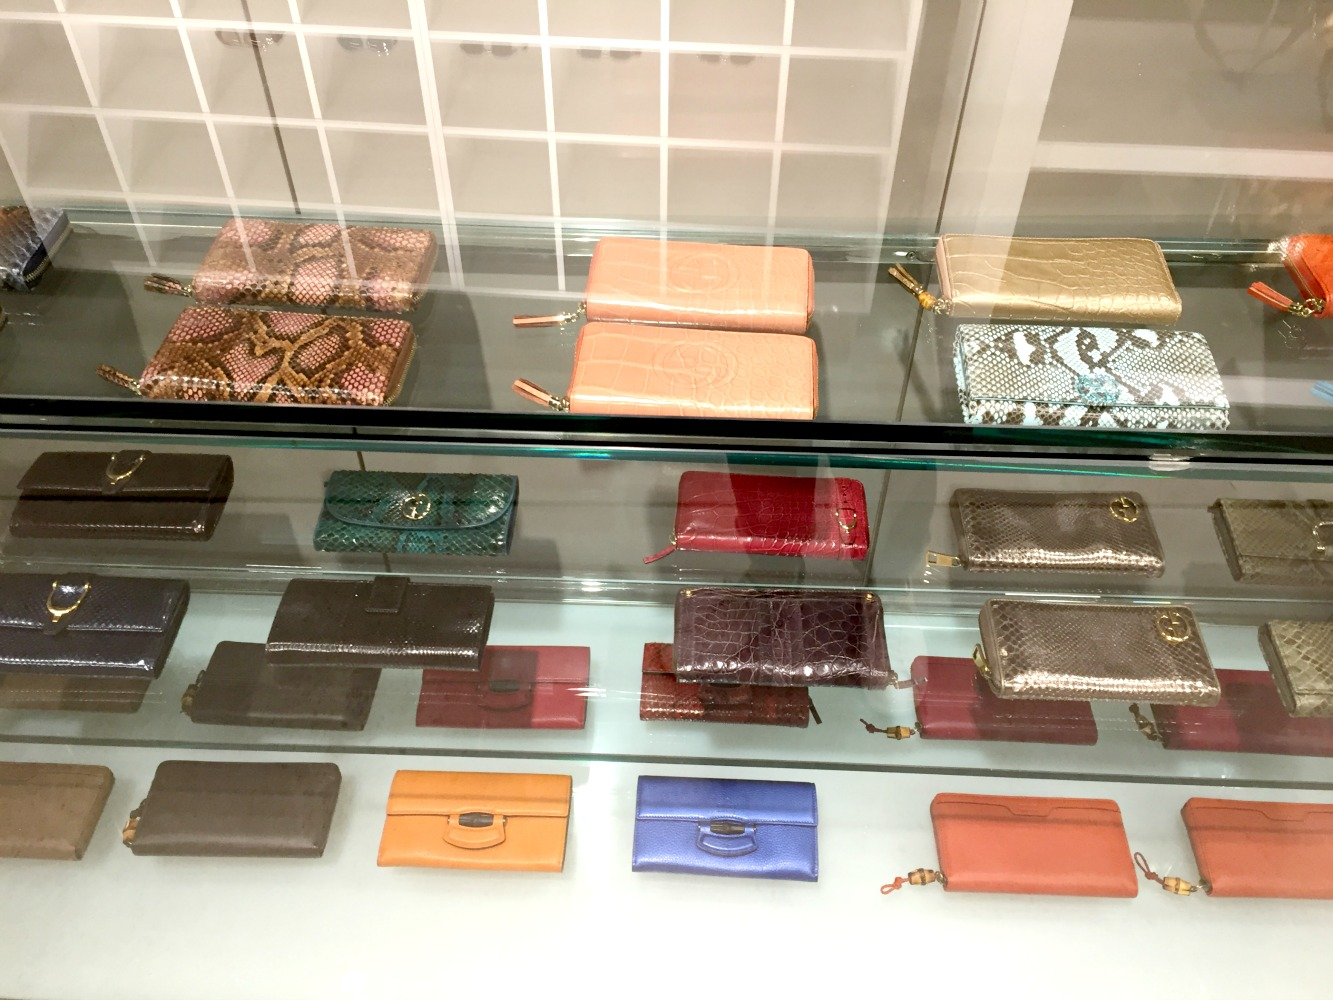 Gucci-Mirabel outlet-Montreal-wallets